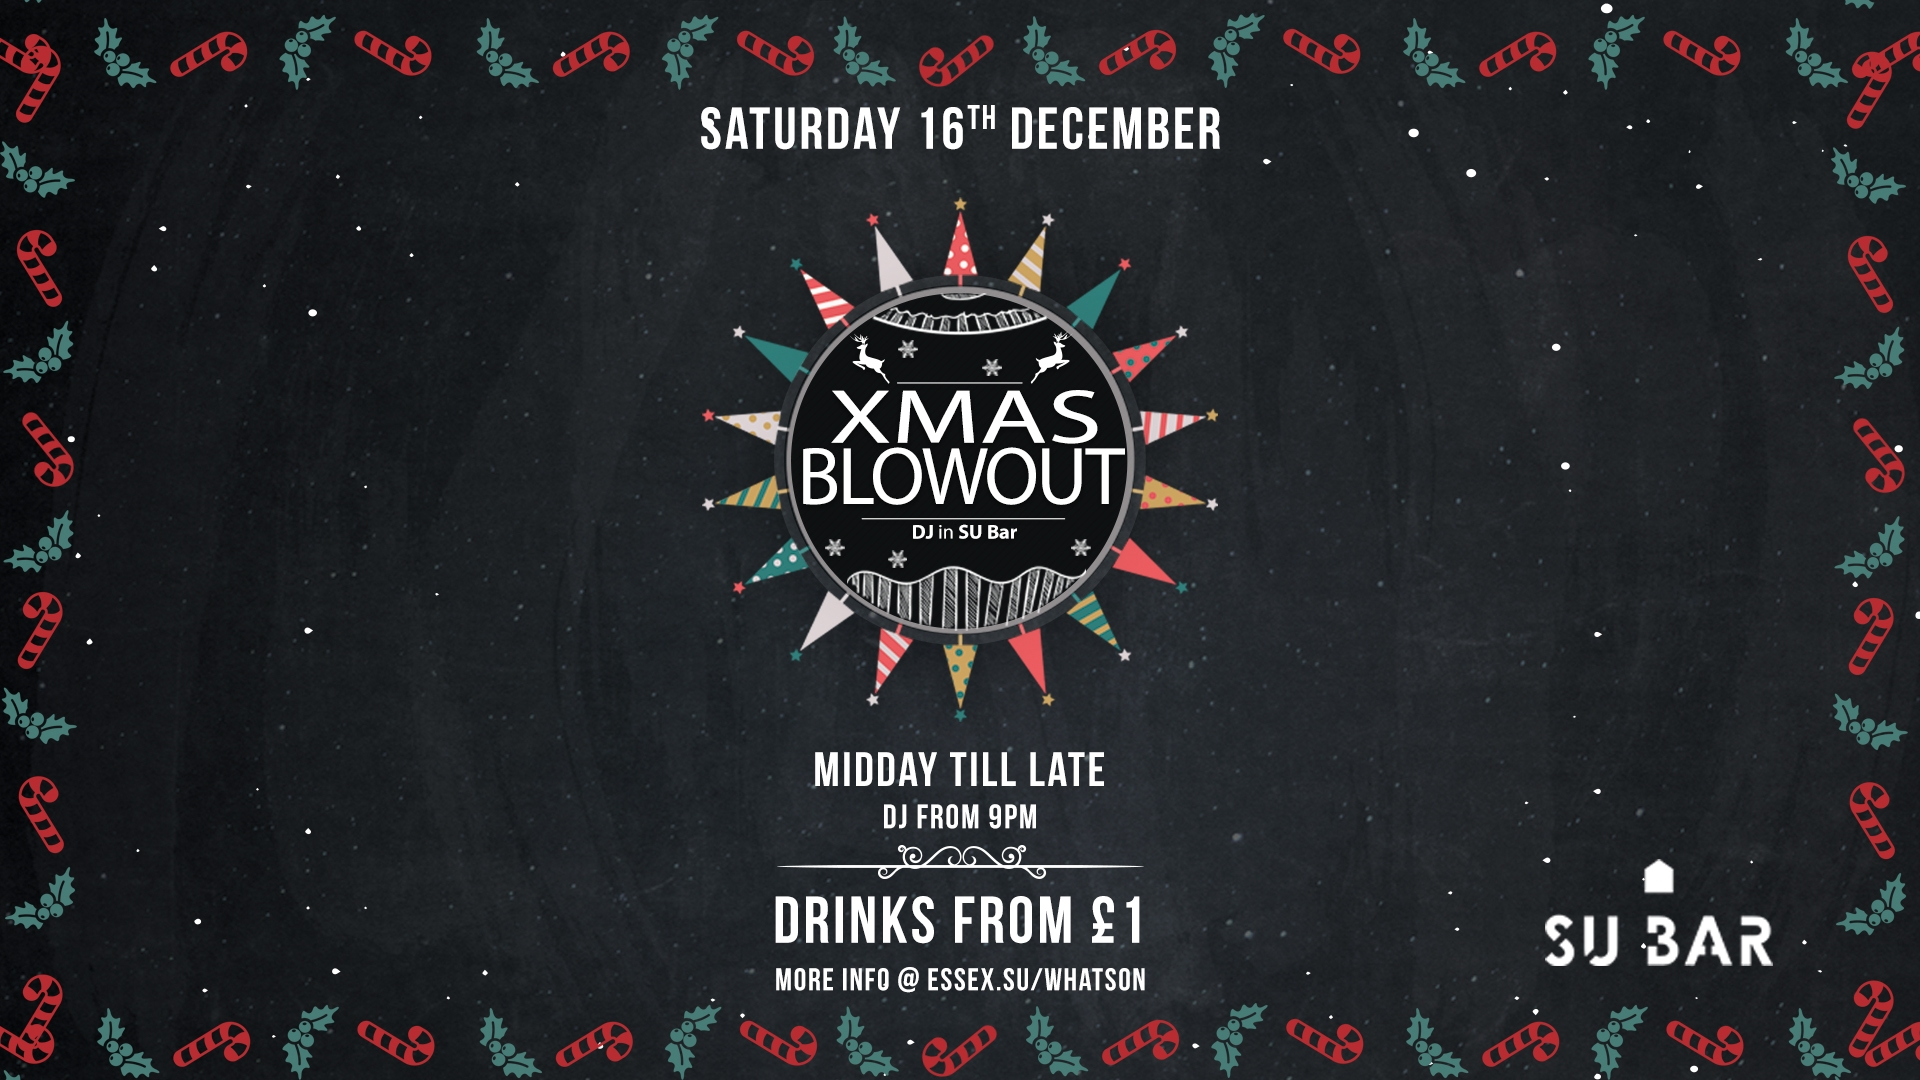 Xmas Blow Out - DRINKS FROM £1 ALL DAY LONG